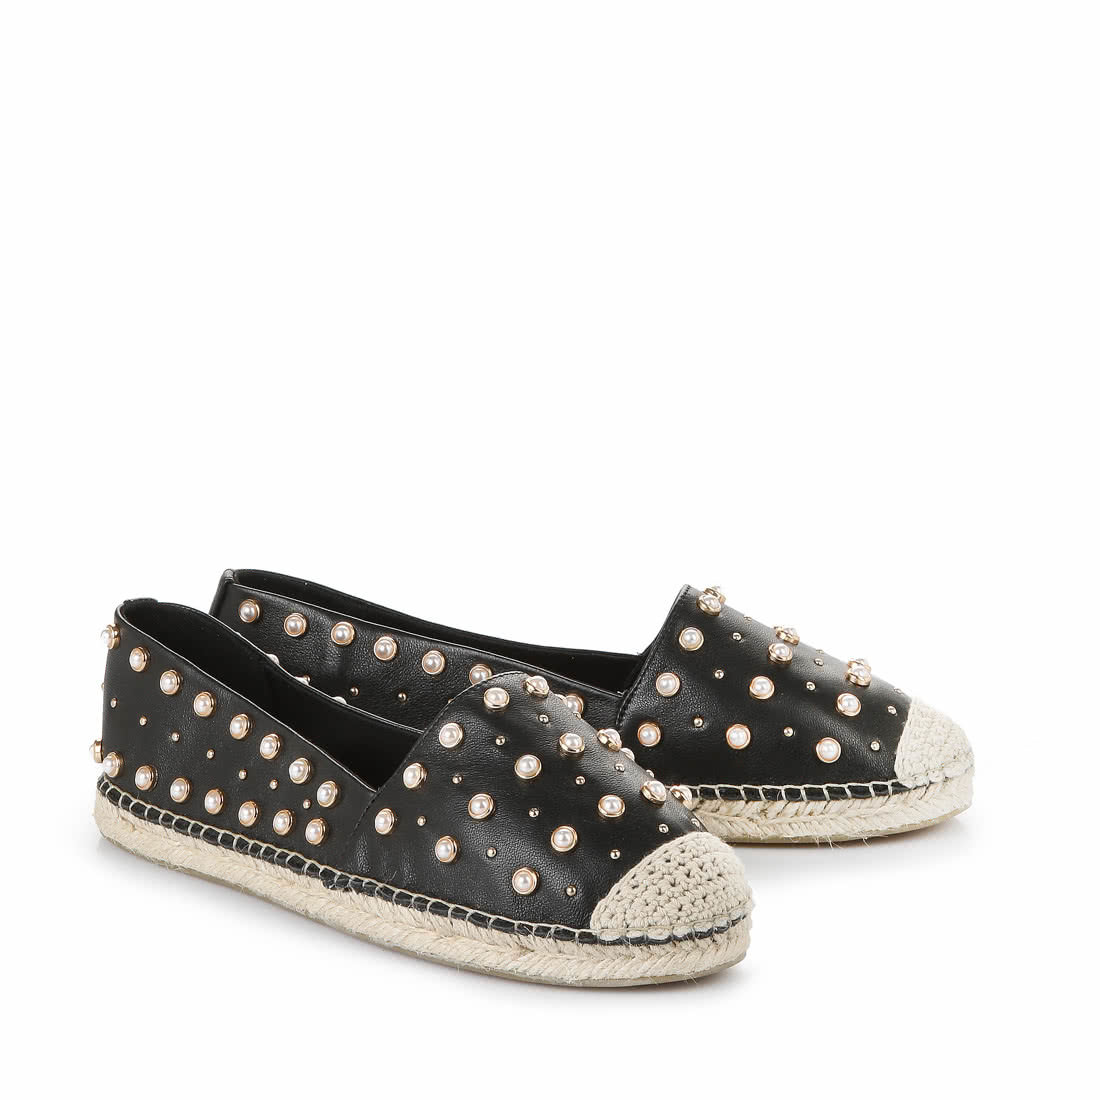 Buffalo Espadrilles In Black With White Pearls Buy Online